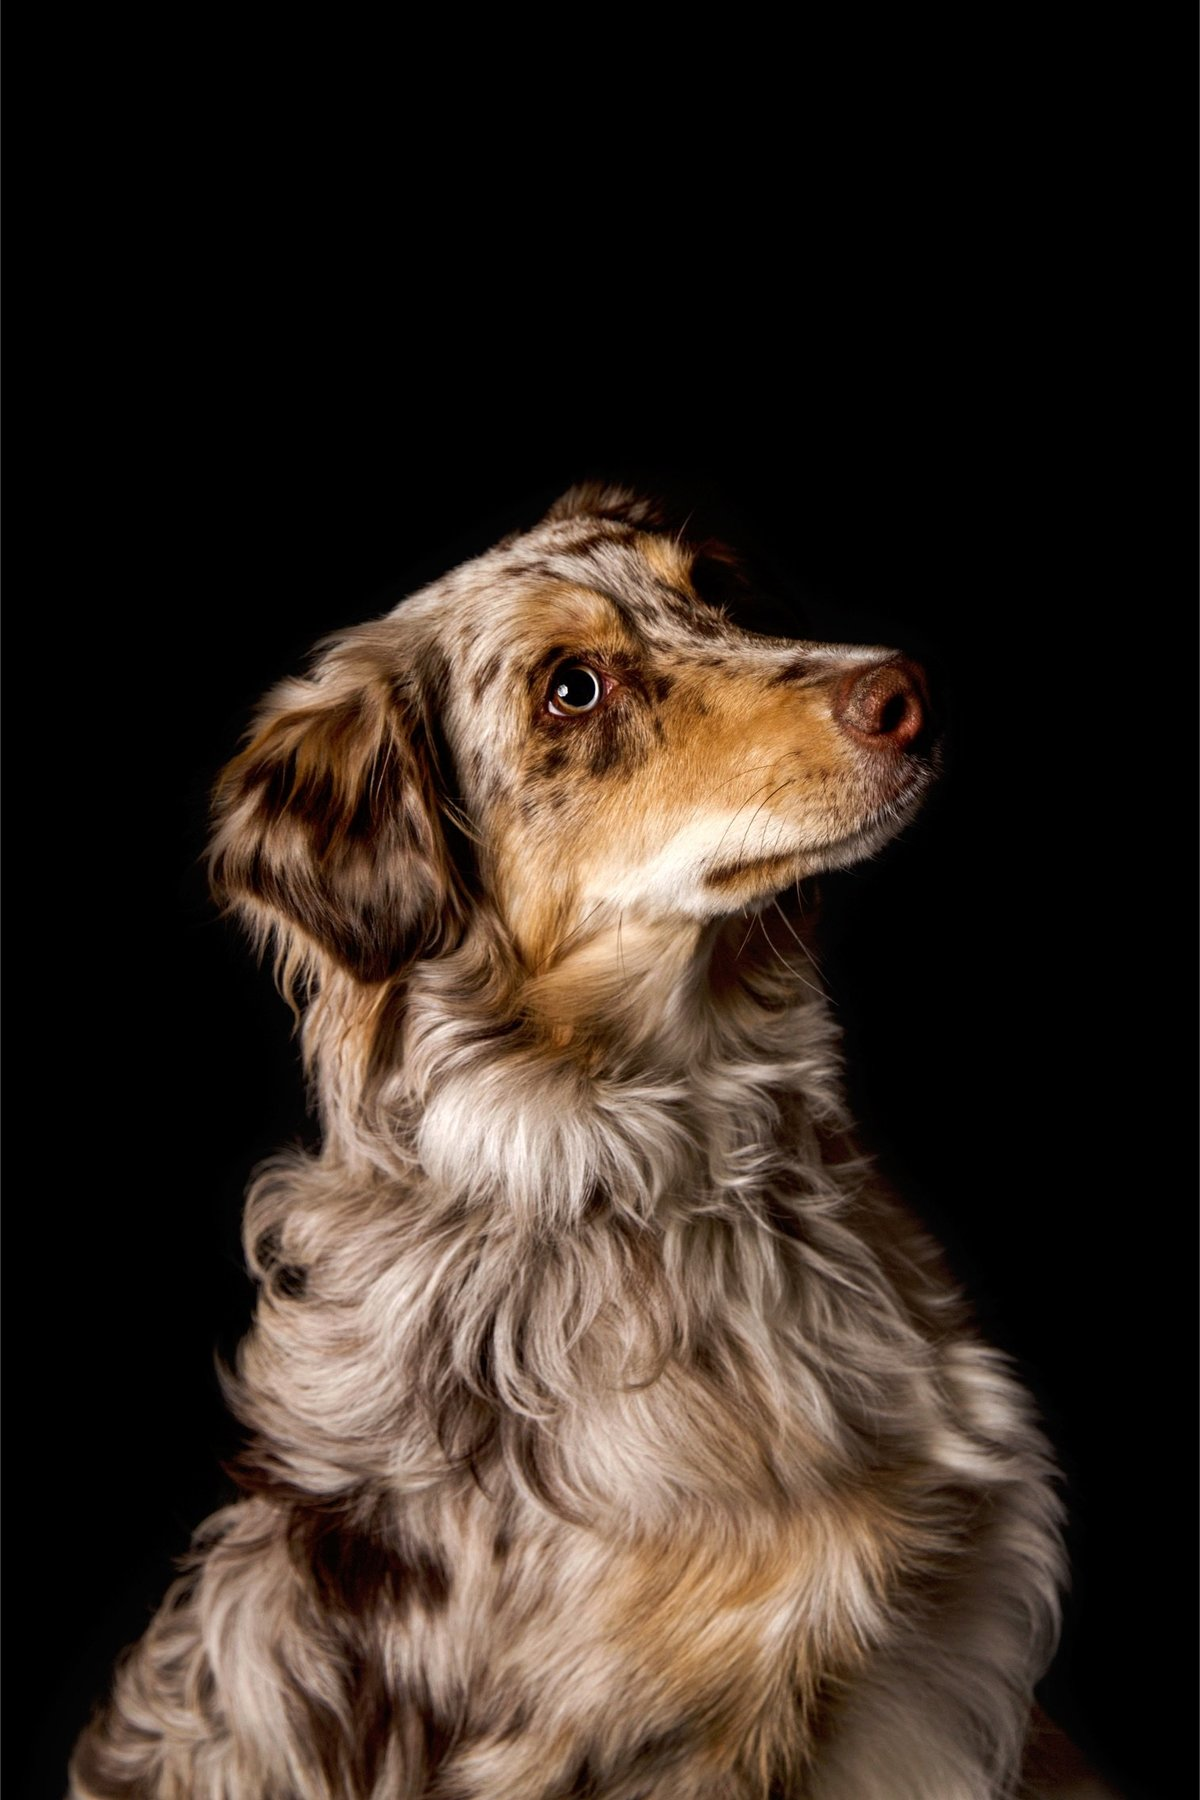 Alisa Messeroff Photography, Alisa Messeroff Photographer, Breckenridge Colorado Photographer, Professional Portrait Photographer, Pet Photographer, Pet Photography, Pet Portraits 6